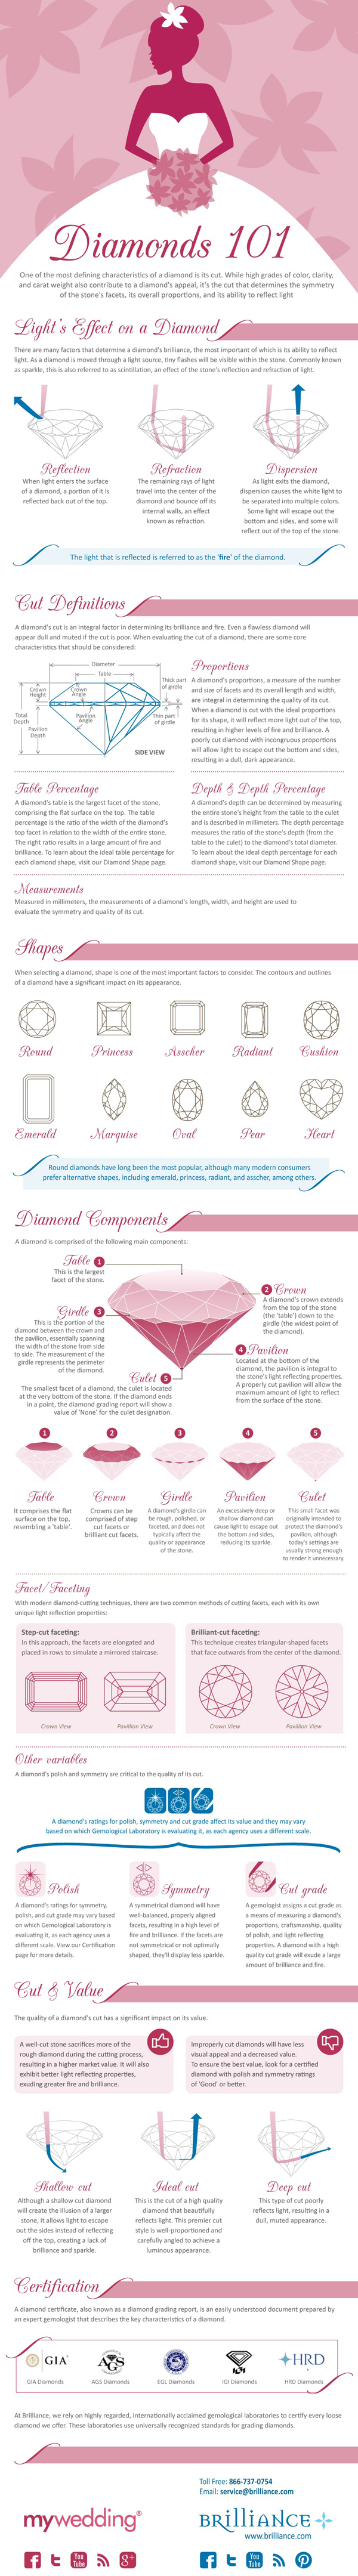 All About Diamonds-Infographic